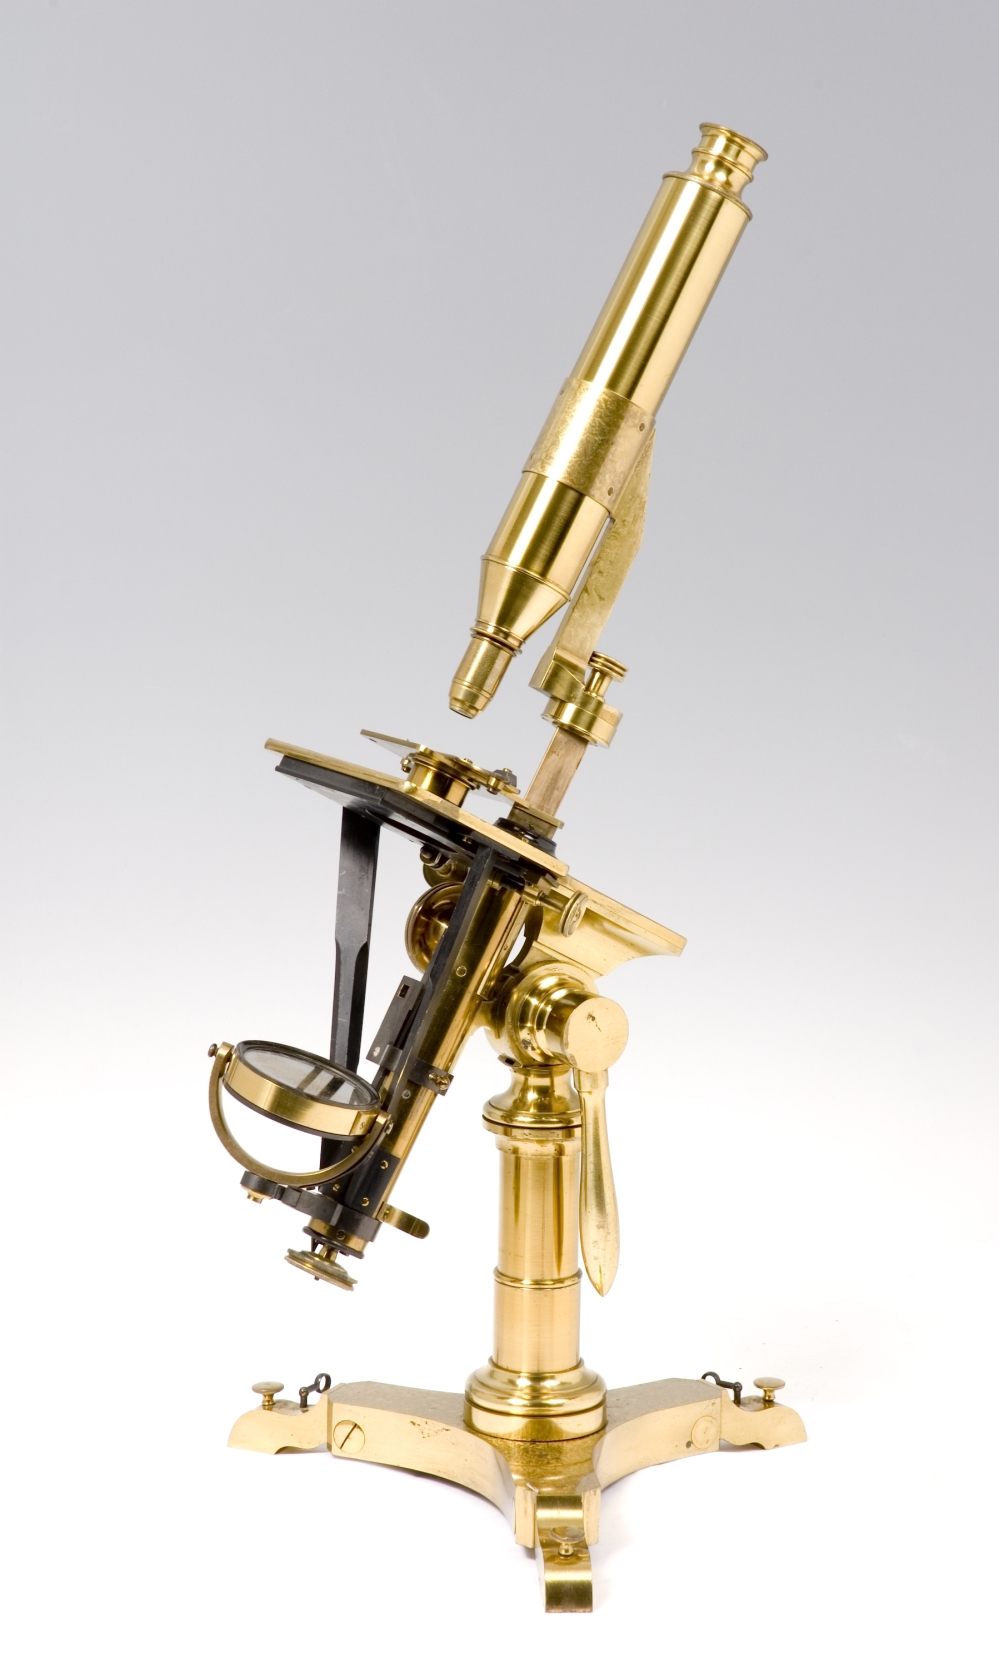 preview image for Compound Microscope in Case, by Andrew Ross, London, c. 1835